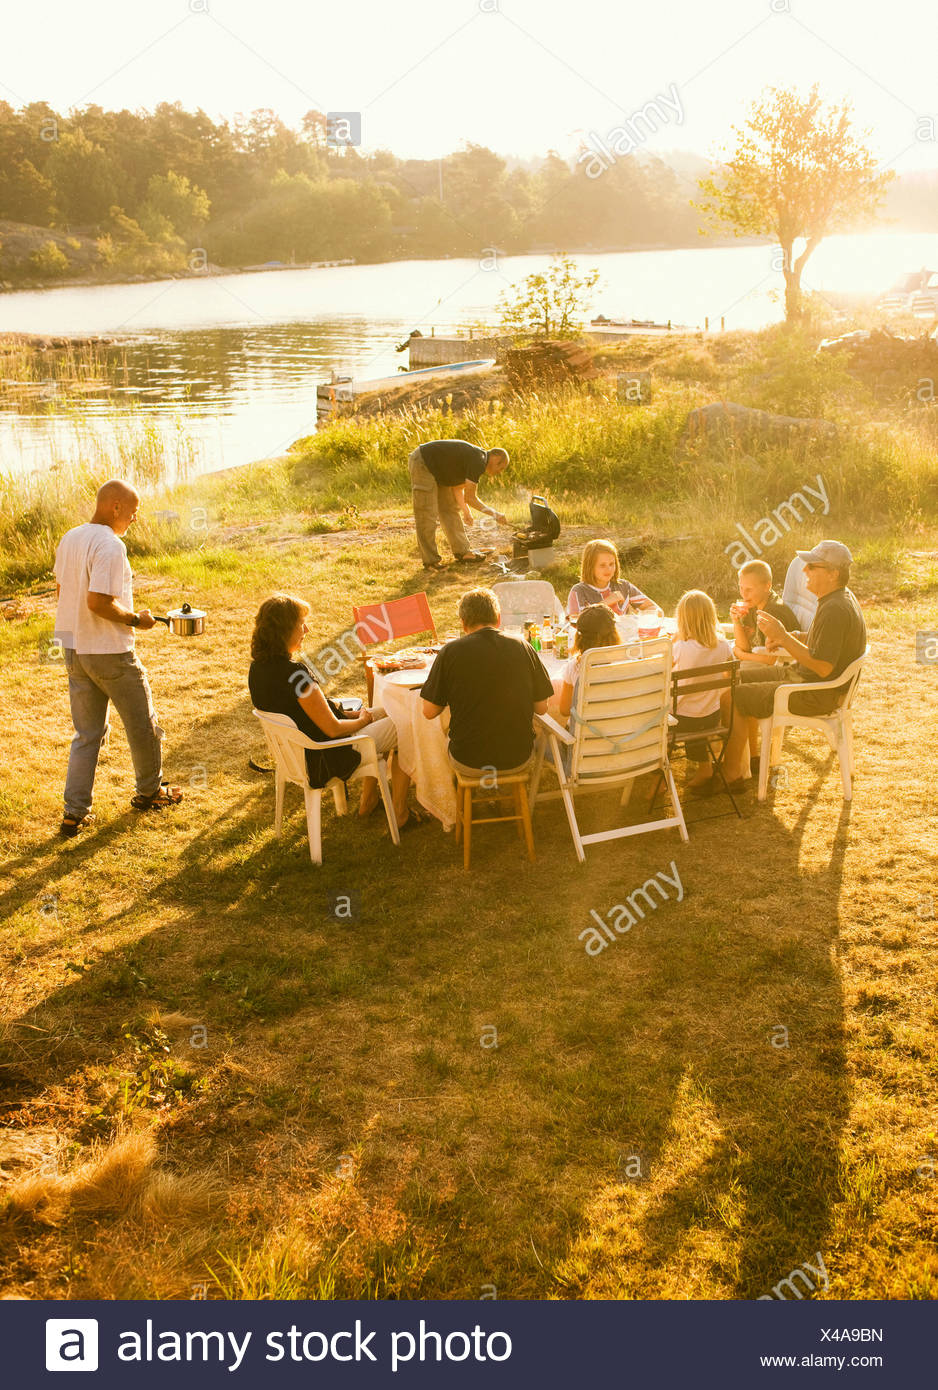 A picnic a summer night Sweden. - Stock Image